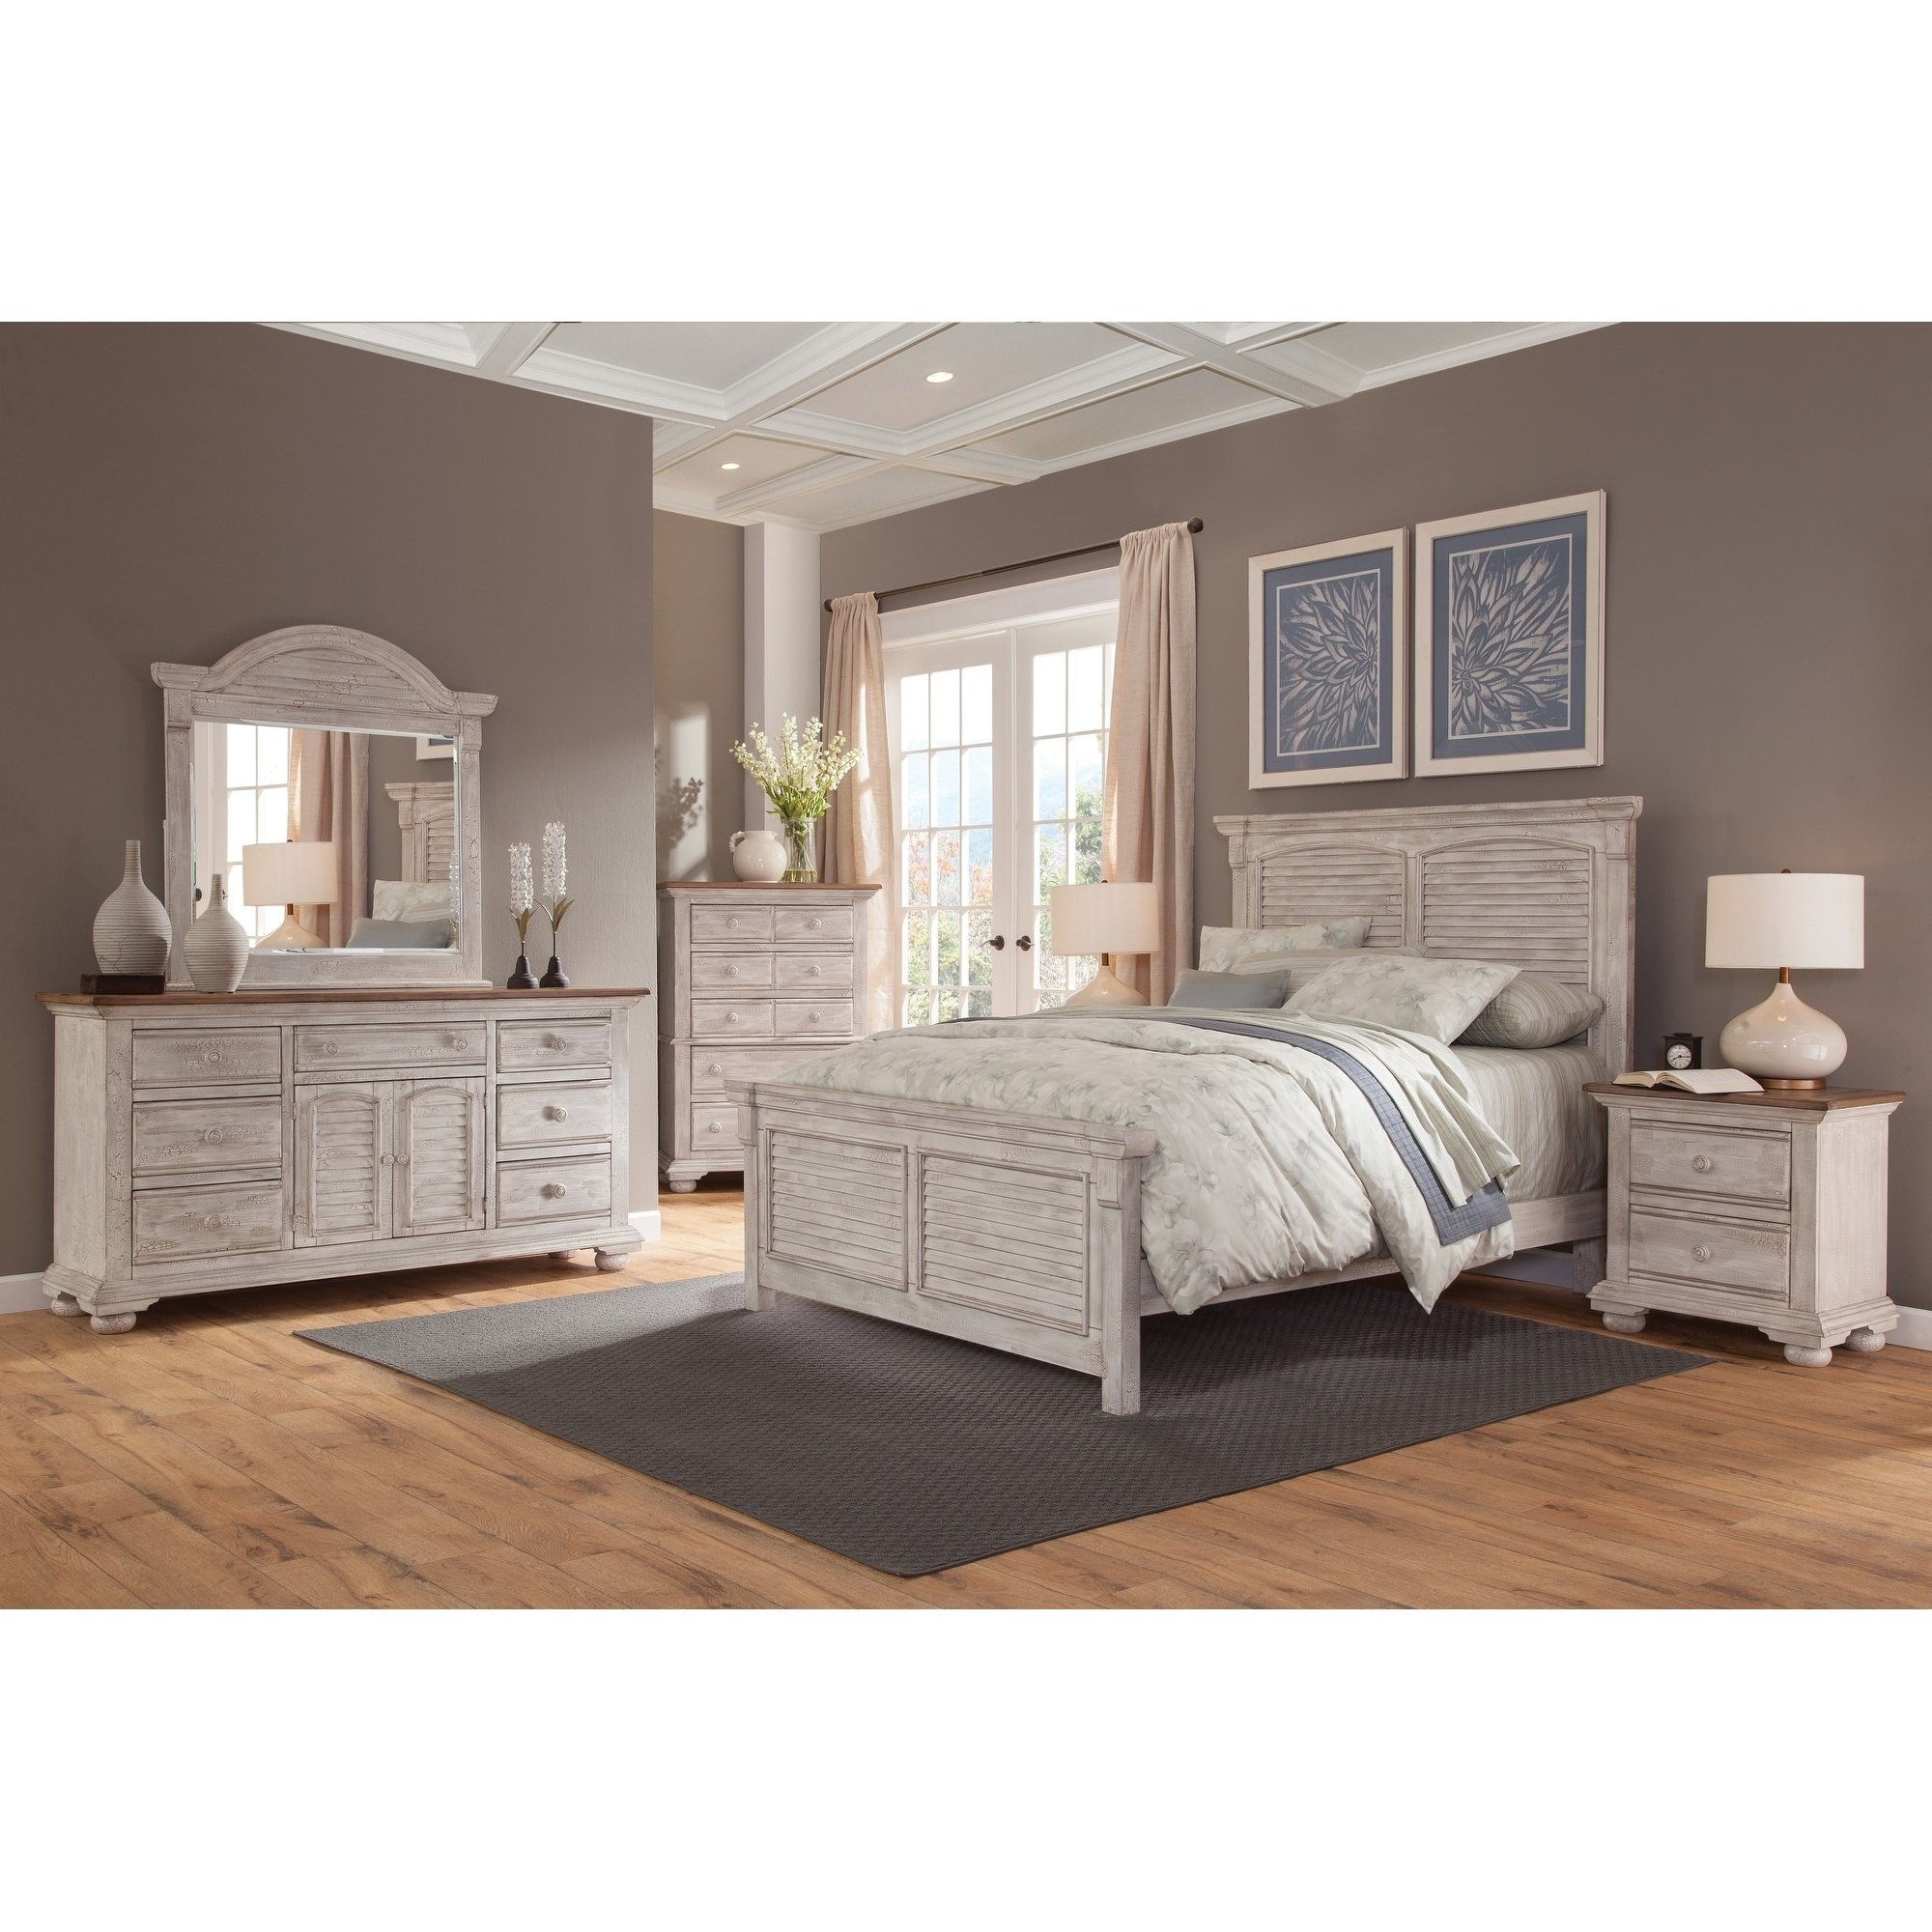 Carlyle Crackled White 5Piece Panel Bedroom Set by